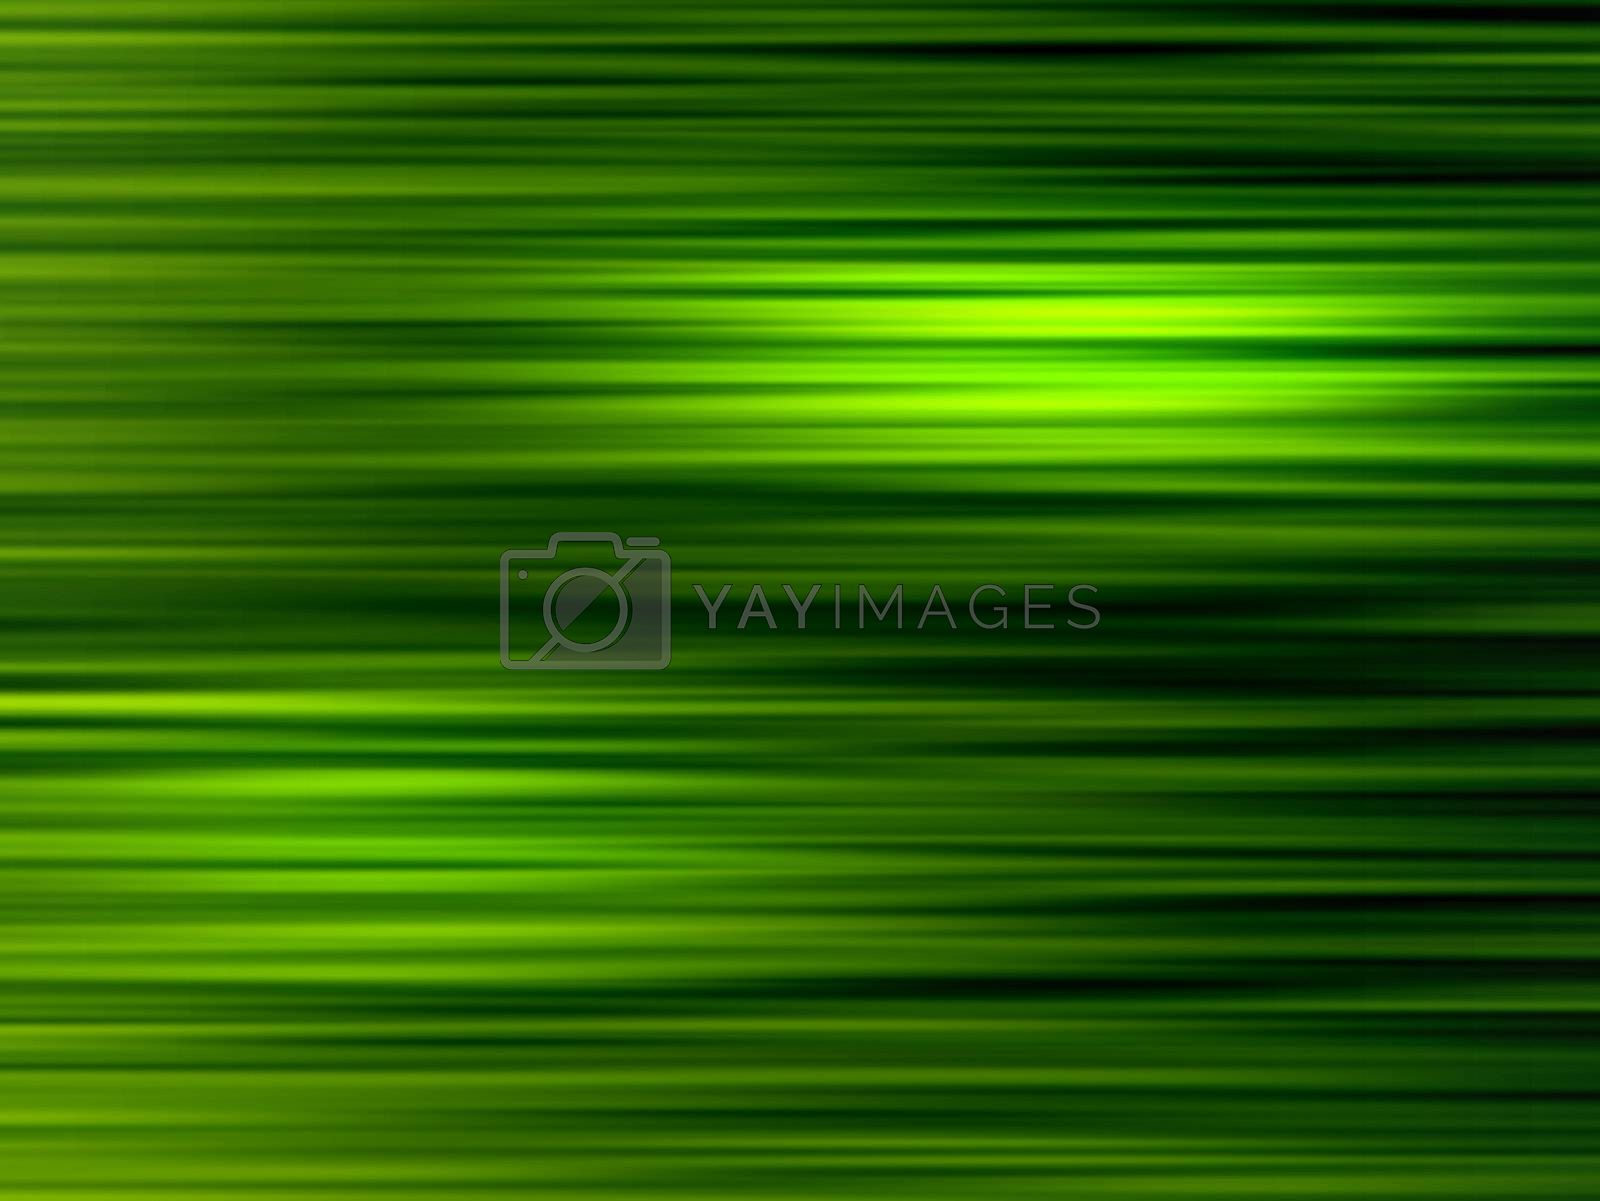 green and black texture, computer generated image